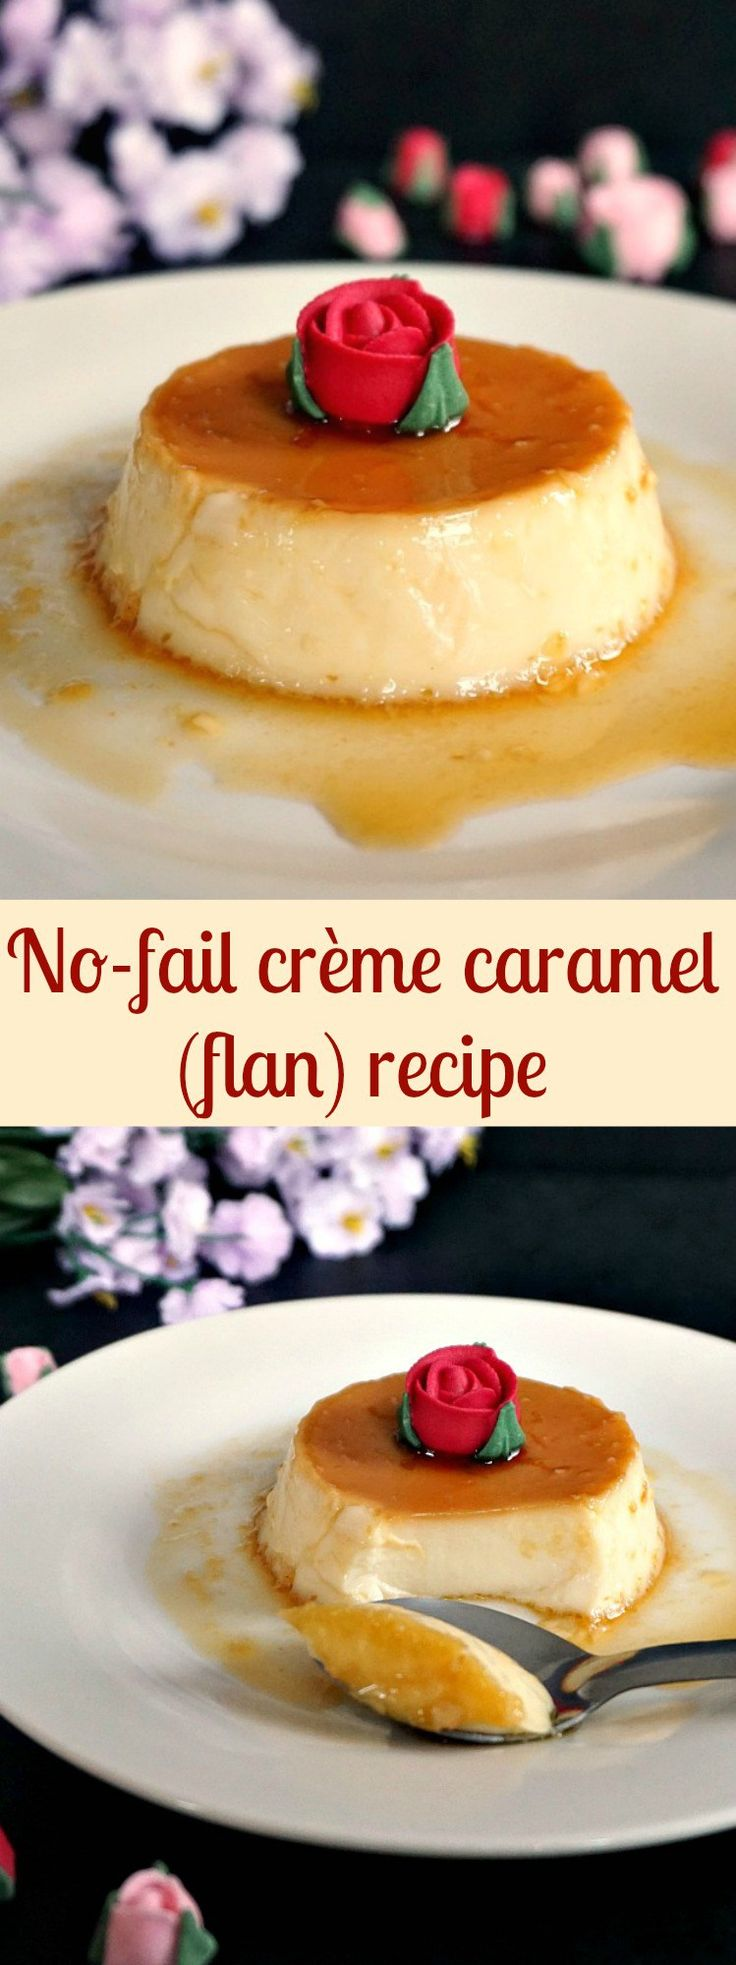 No-fail crème caramel (flan) recipe, the perfect flourless dessert for Valentine's Day.